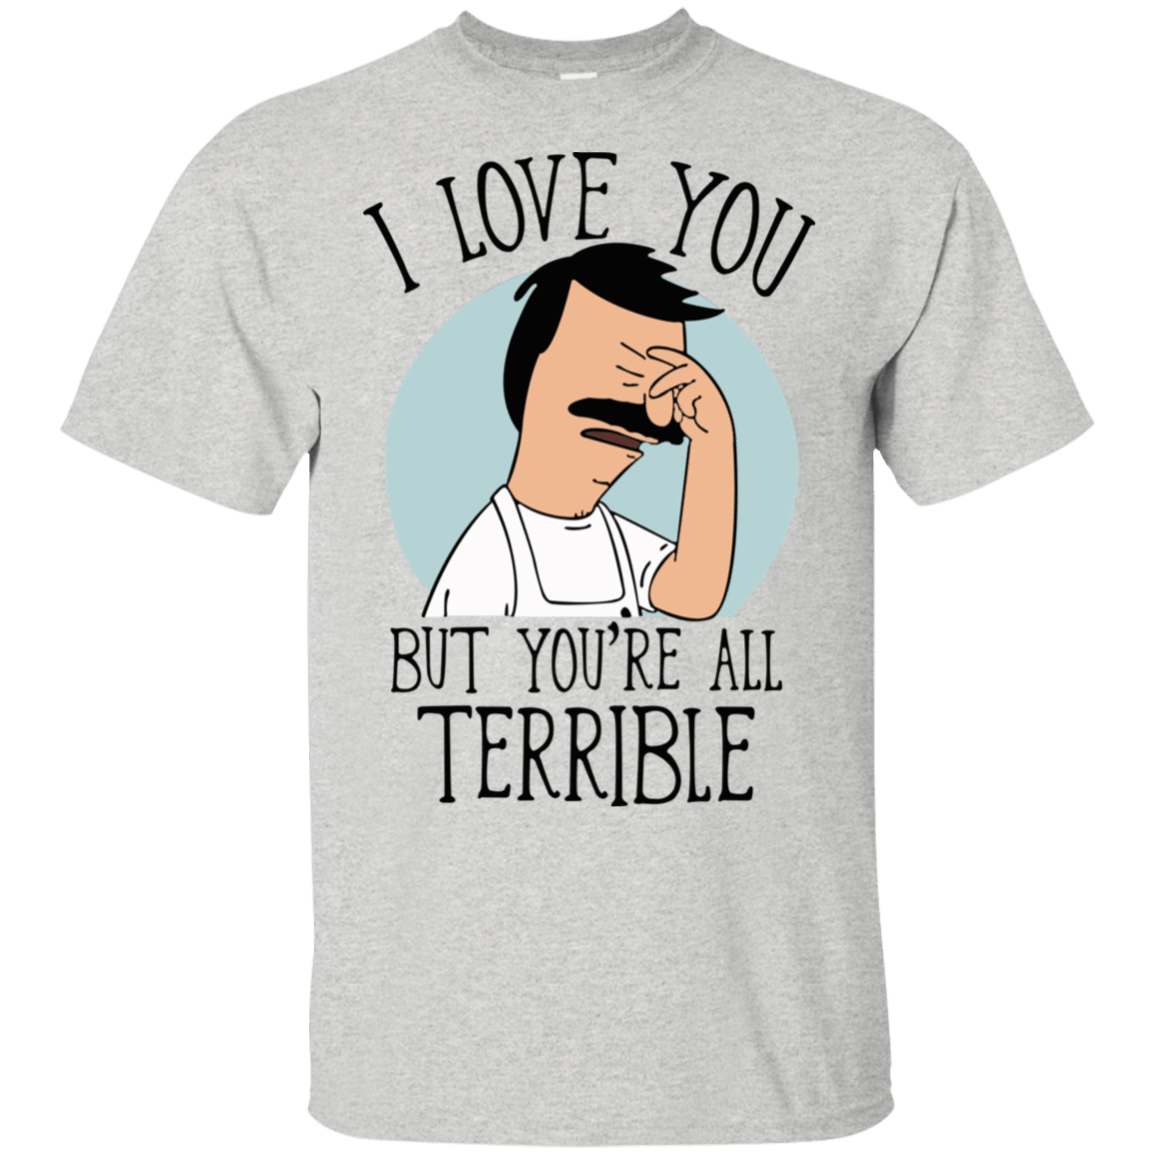 Bob's Burgers: I Love You But You're All Terrible 22-2475-72789298-12568 - Tee Ript